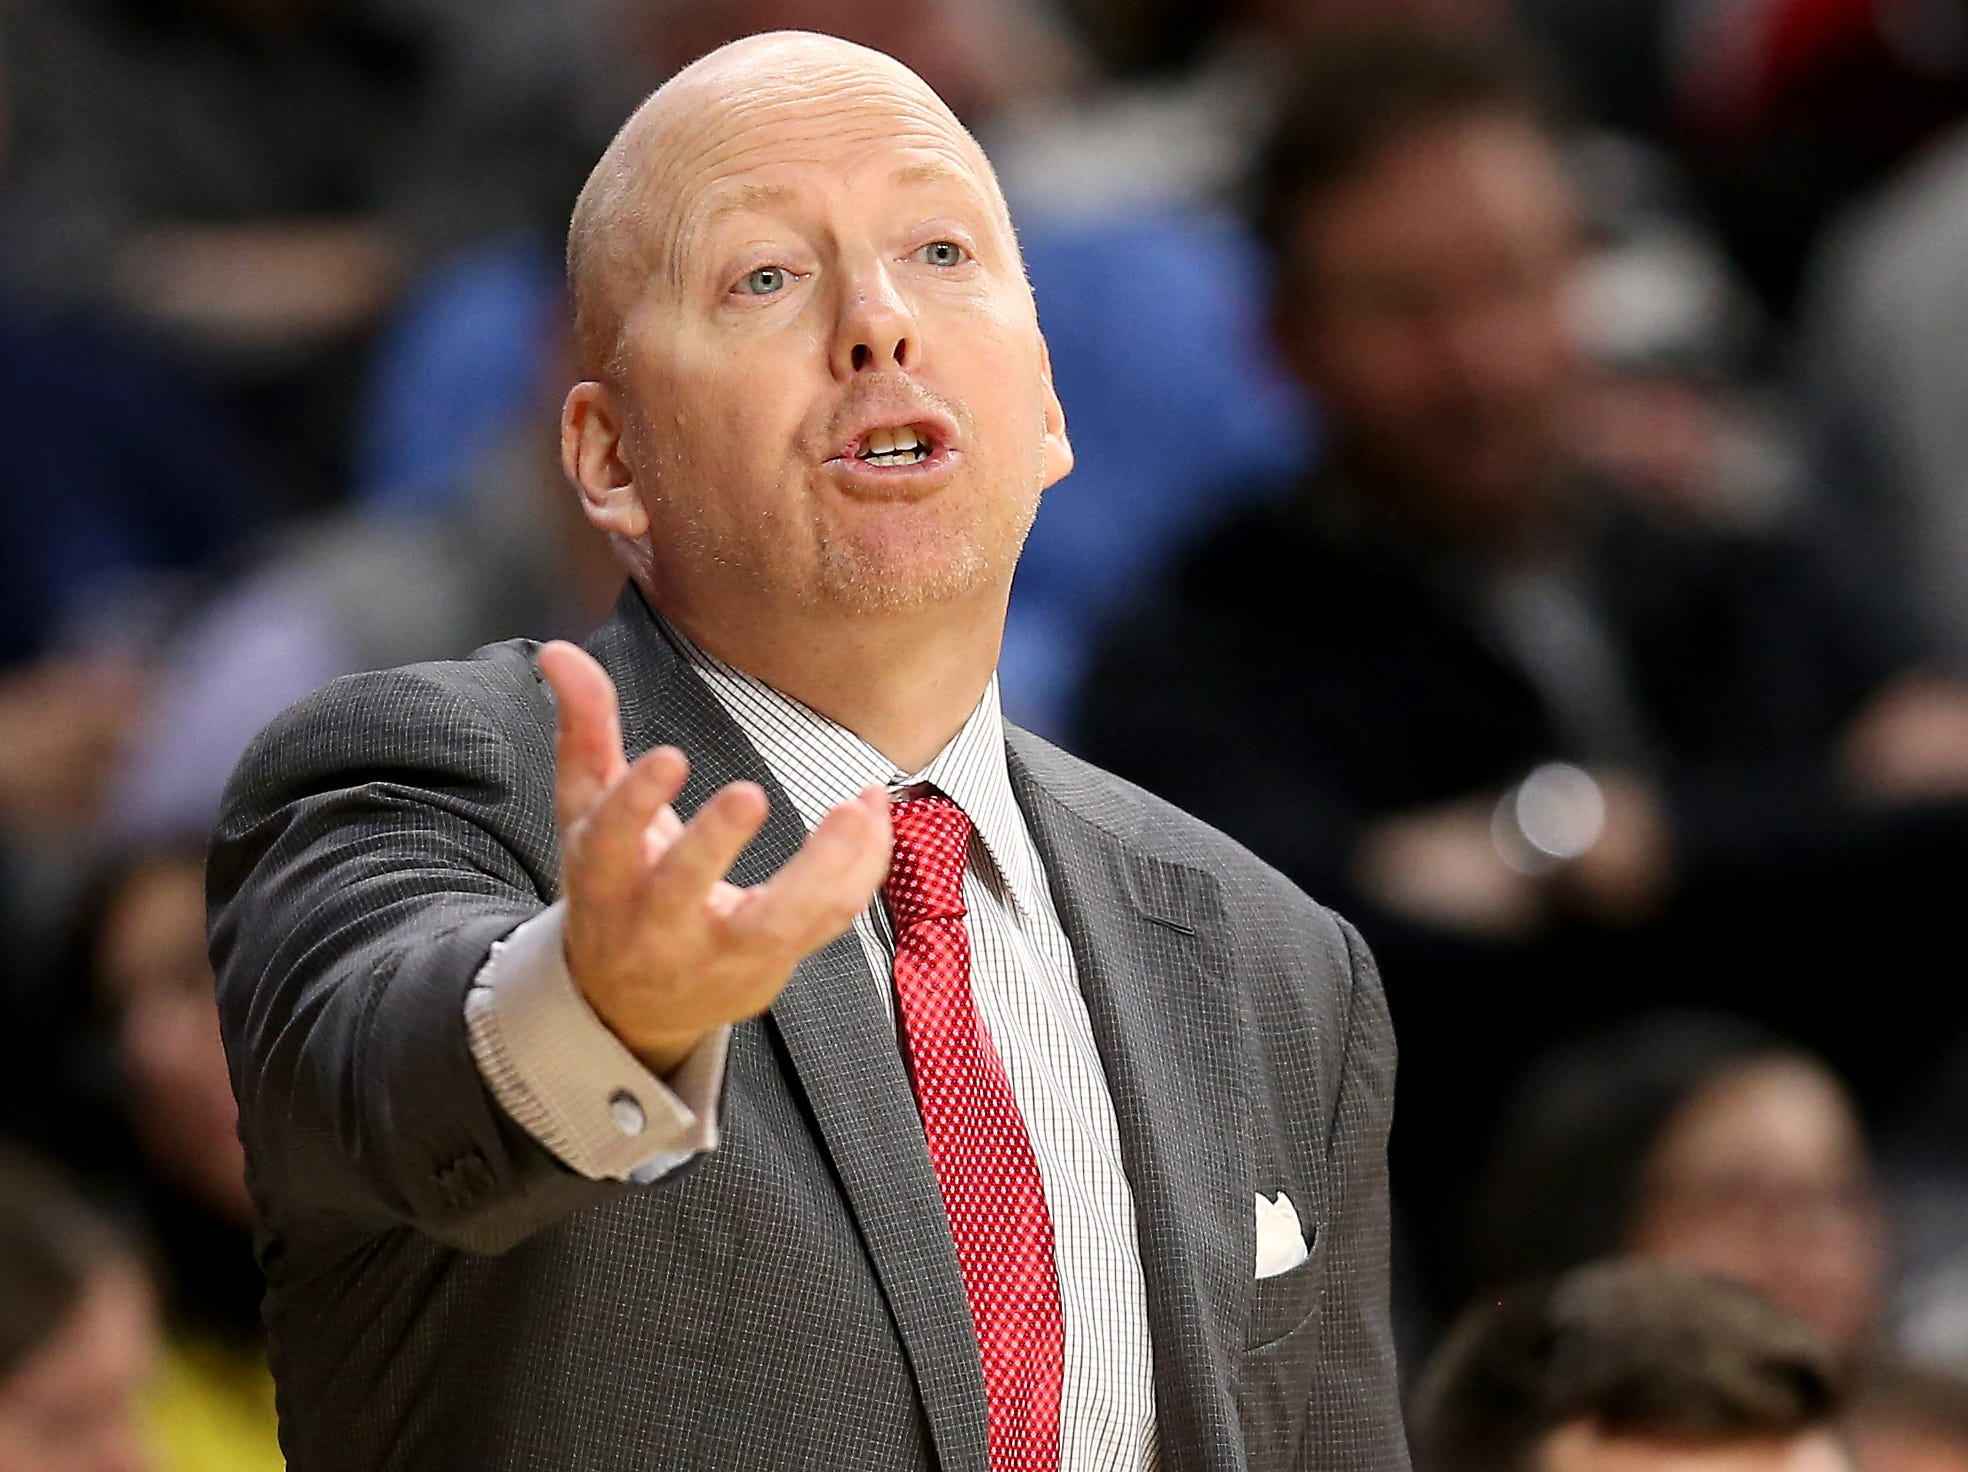 Cincinnati Bearcats head coach Mick Cronin instructs the team in the first half of an NCAA college basketball game against the Northern Kentucky Norse, Tuesday, Dec. 4, 2018, at Fifth Third Arena in Cincinnati.